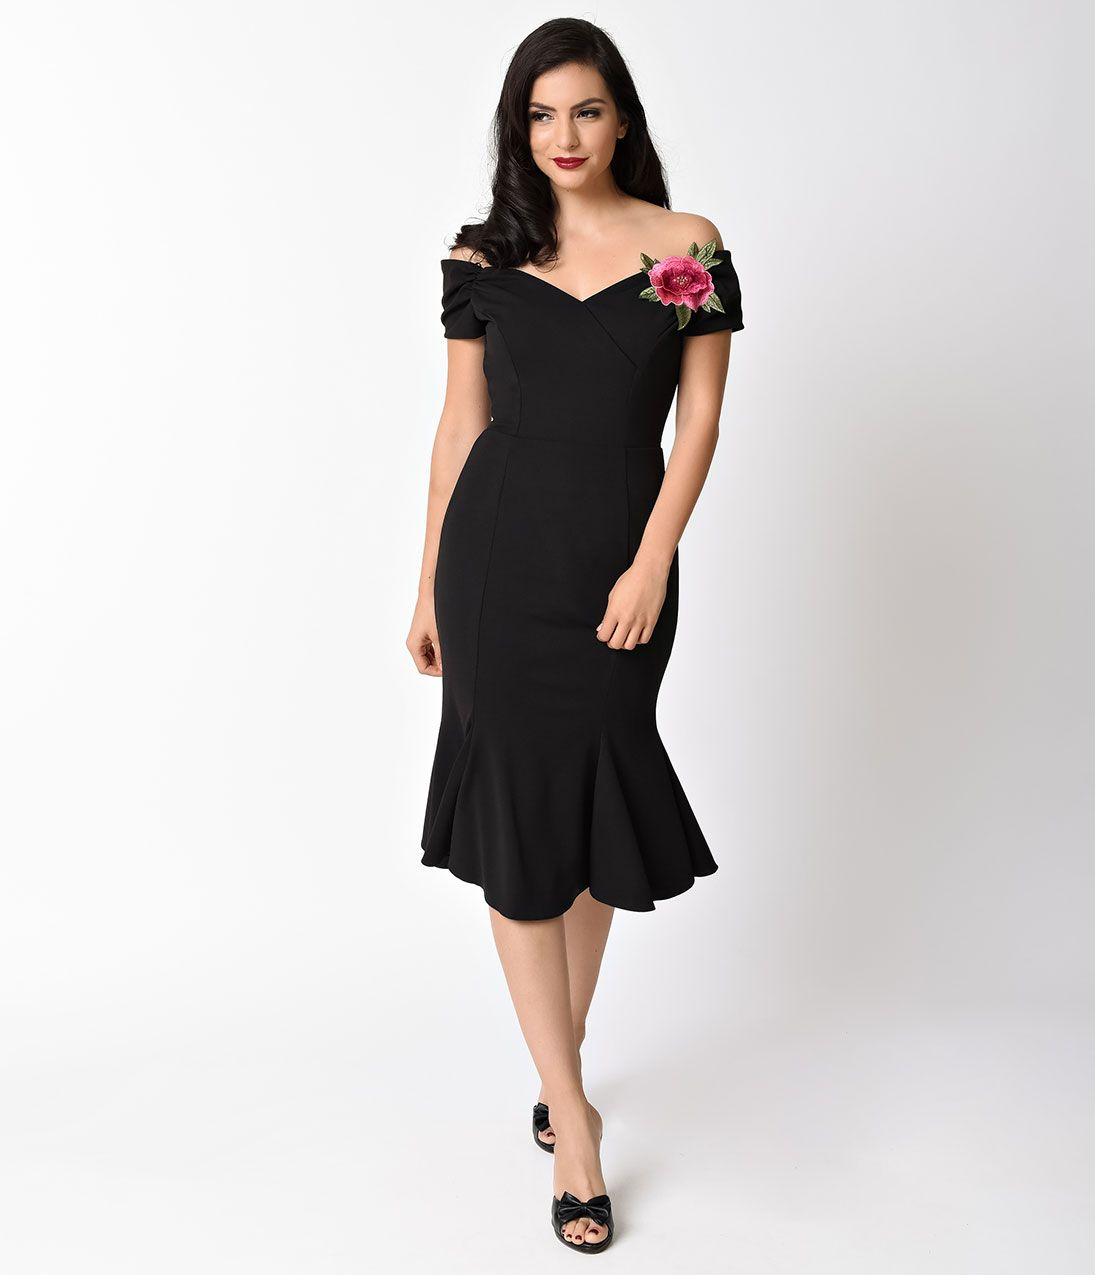 wiggle dresses for sale 1940s 1950s 1960s styles